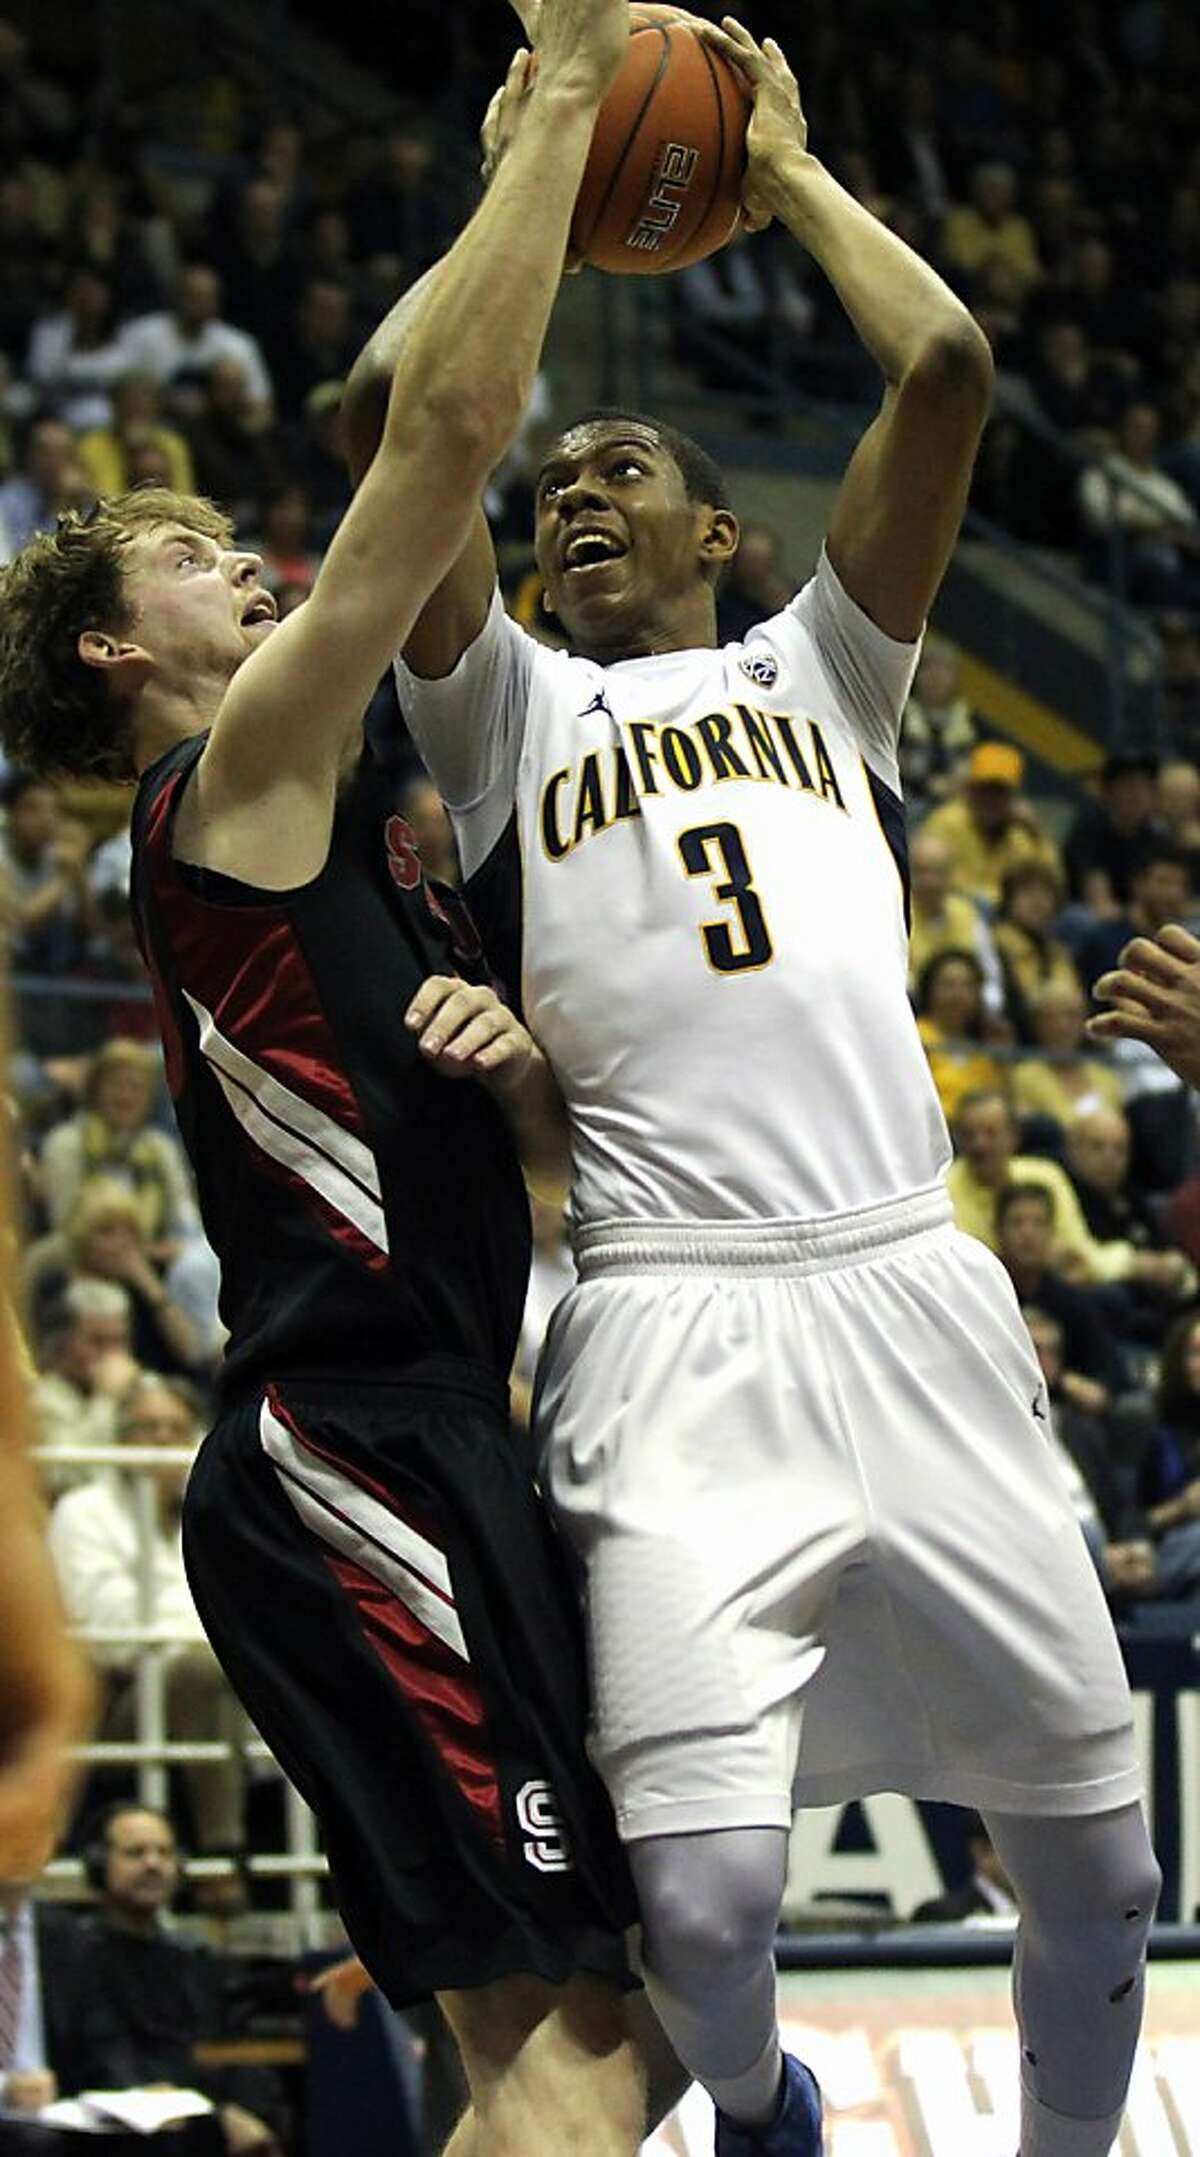 California guard Tyrone Wallace (3) drives to the basket in front of a Stanford defender in the first half of their NCAA basketball game Wednesday, March 6, 2013, in Berkeley, Calif.